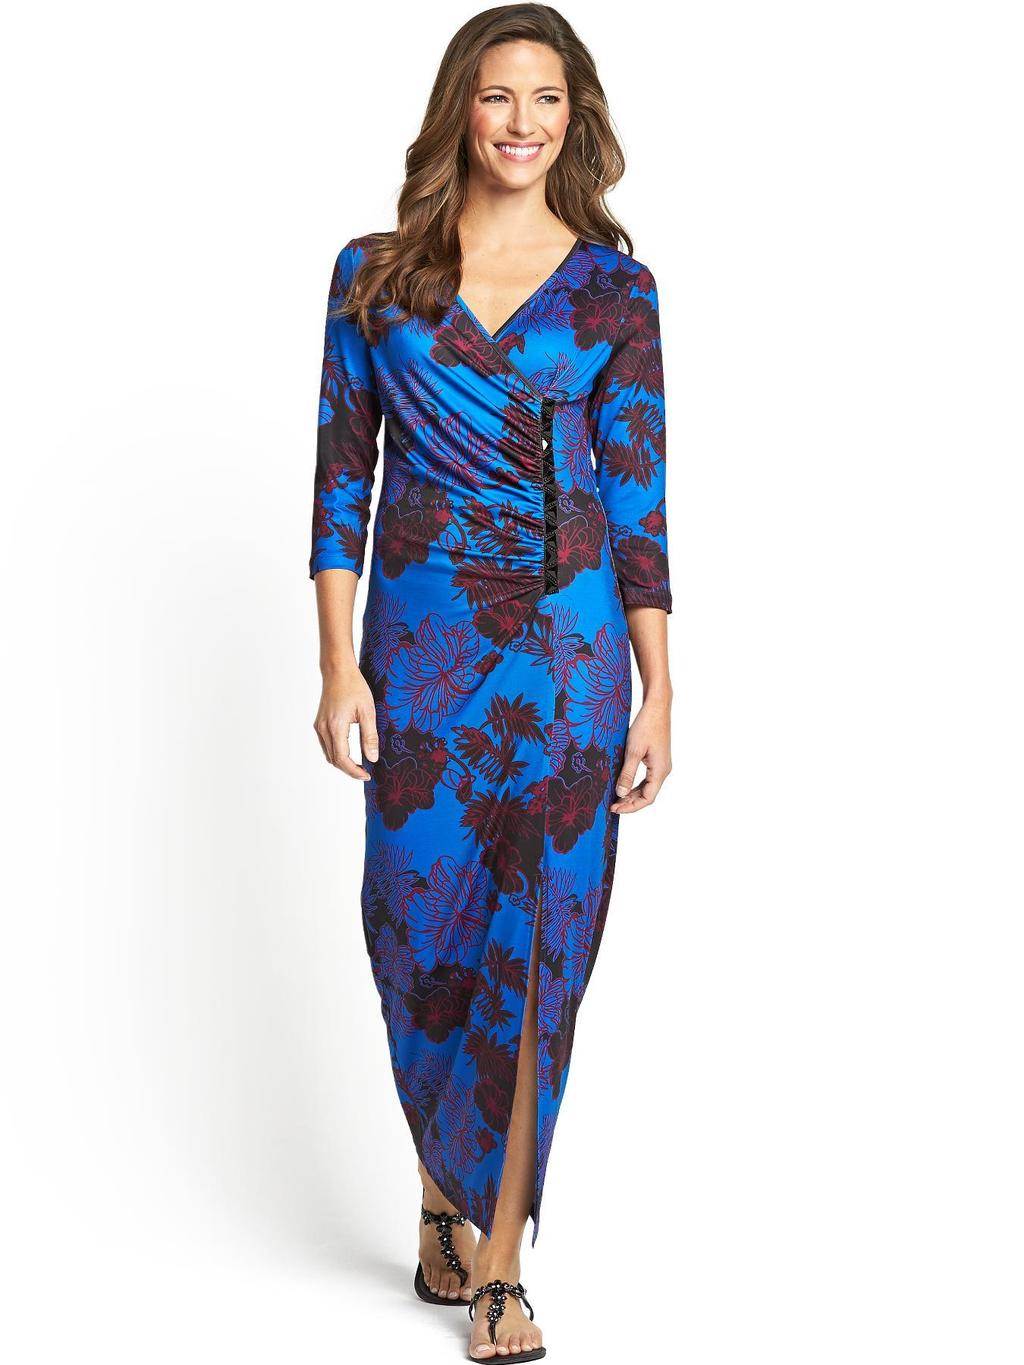 Formal Ity Maxi Dress - style: faux wrap/wrap; neckline: low v-neck; length: ankle length; hip detail: draws attention to hips; bust detail: subtle bust detail; predominant colour: royal blue; secondary colour: chocolate brown; occasions: evening, occasion; fit: body skimming; fibres: polyester/polyamide - stretch; sleeve length: 3/4 length; sleeve style: standard; pattern type: fabric; pattern size: standard; pattern: florals; texture group: jersey - stretchy/drapey; embellishment: studs; season: s/s 2014; wardrobe: event; embellishment location: waist